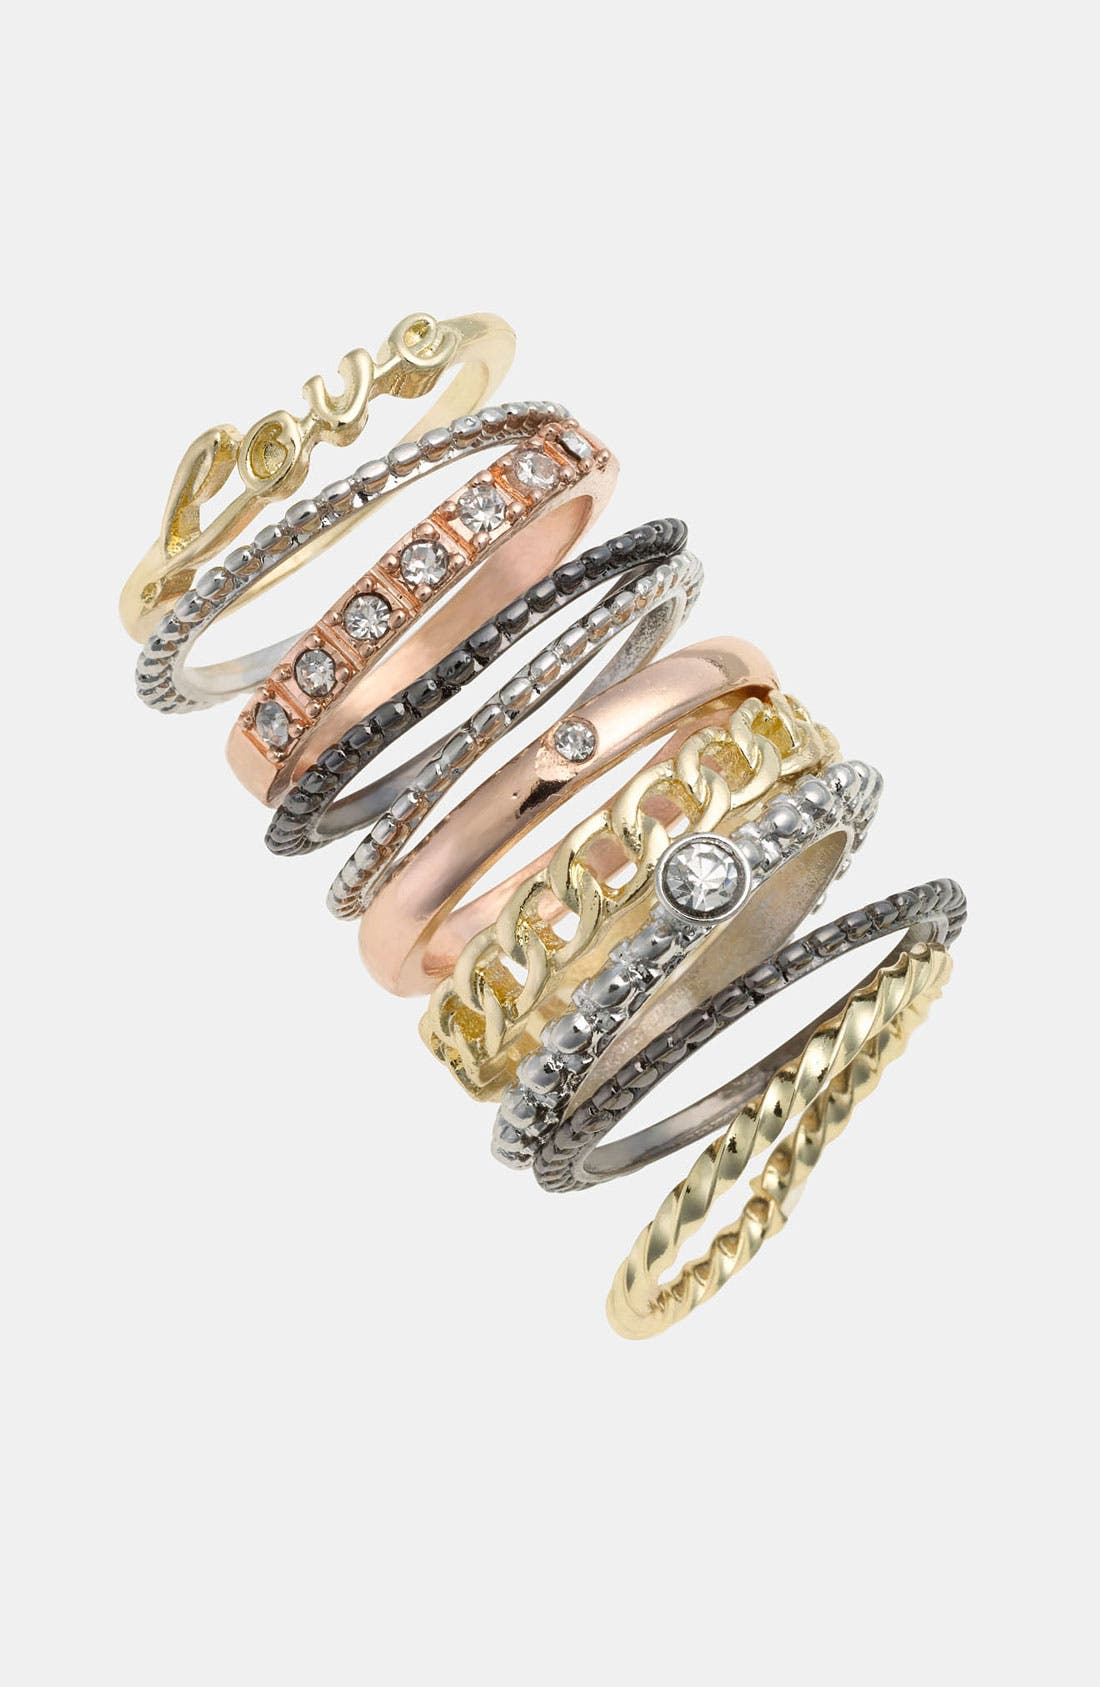 Main Image - Carole Mixed Metal Stackable Rings (Set of 10)